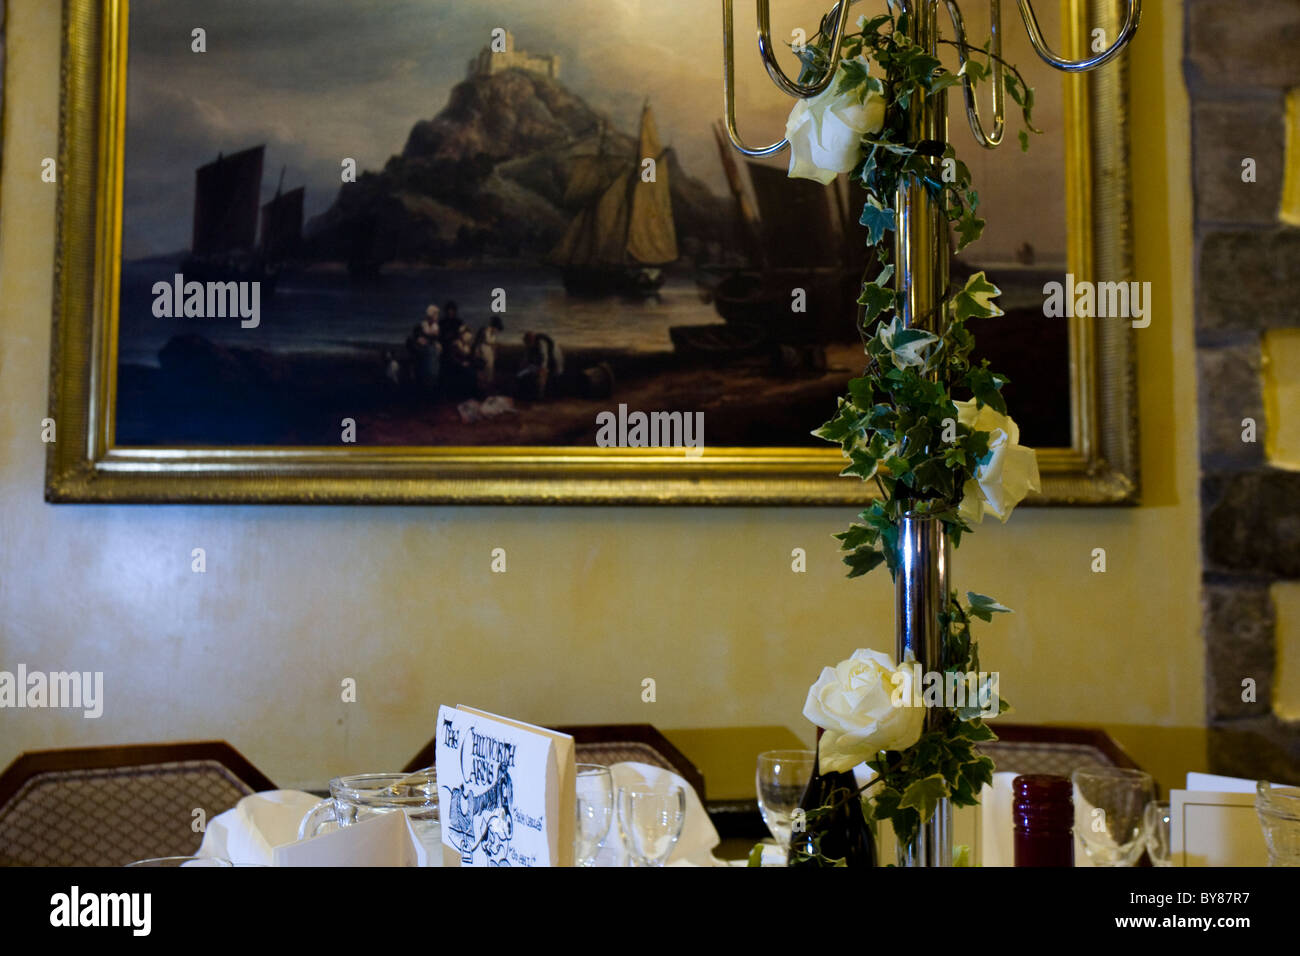 White roses and ivy centrepiece on dining table - Stock Image